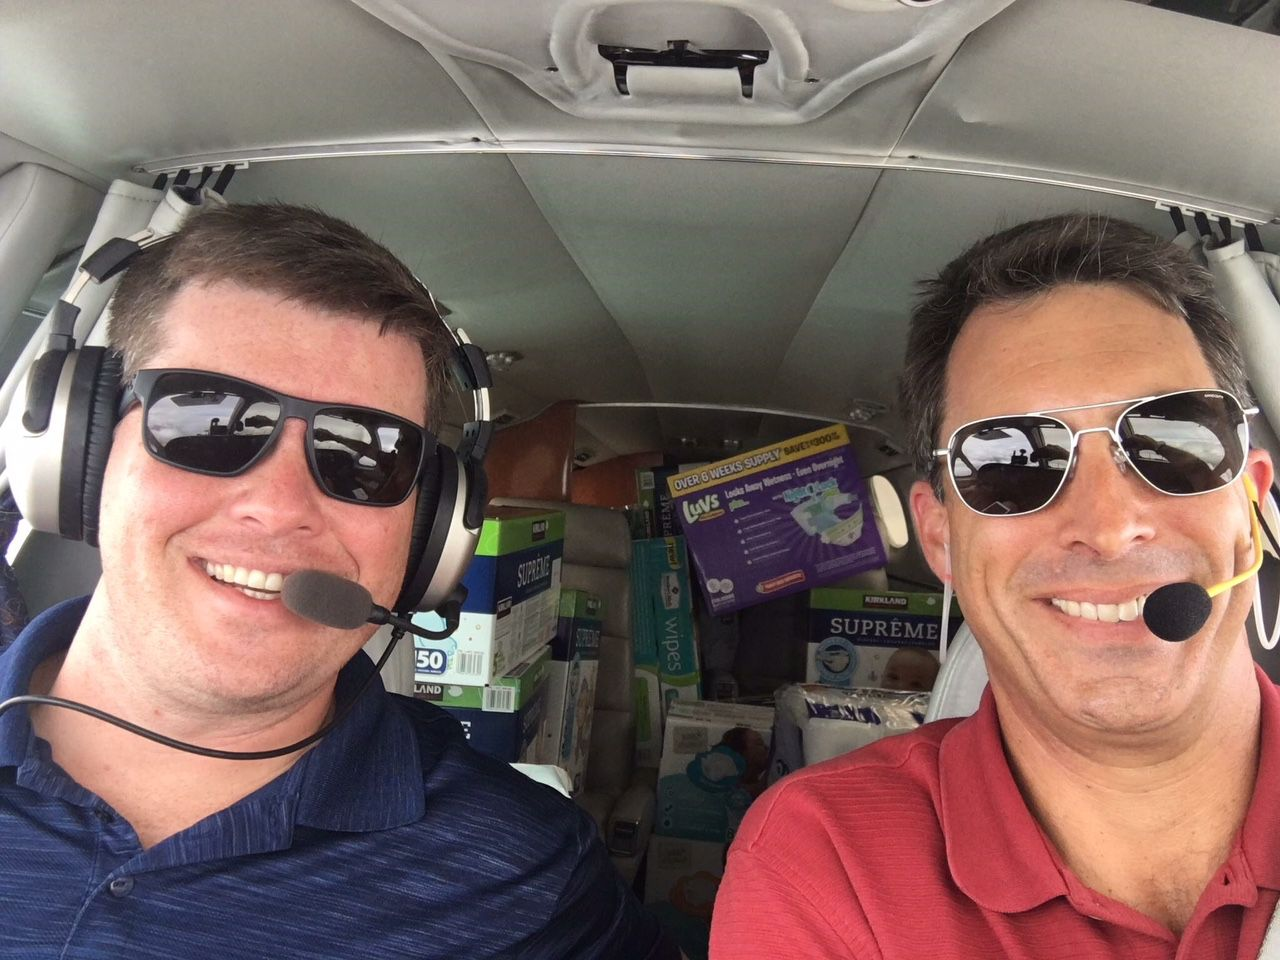 Brian Kelly (left) and Robert Johnson (right) delivering supplies for Operation Airdrop.